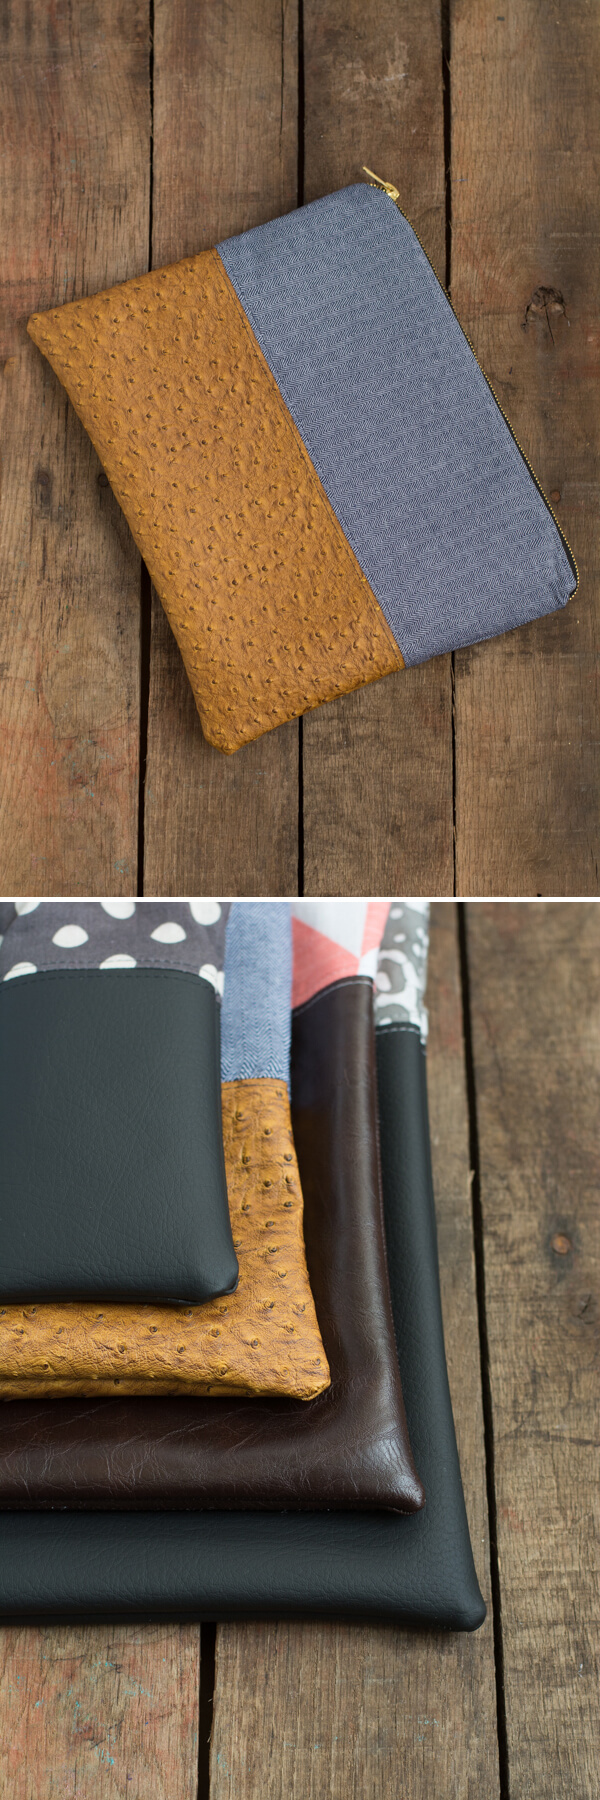 Cotton and Vinyl Pouch - Zipper Pouch Series   this heart of mine